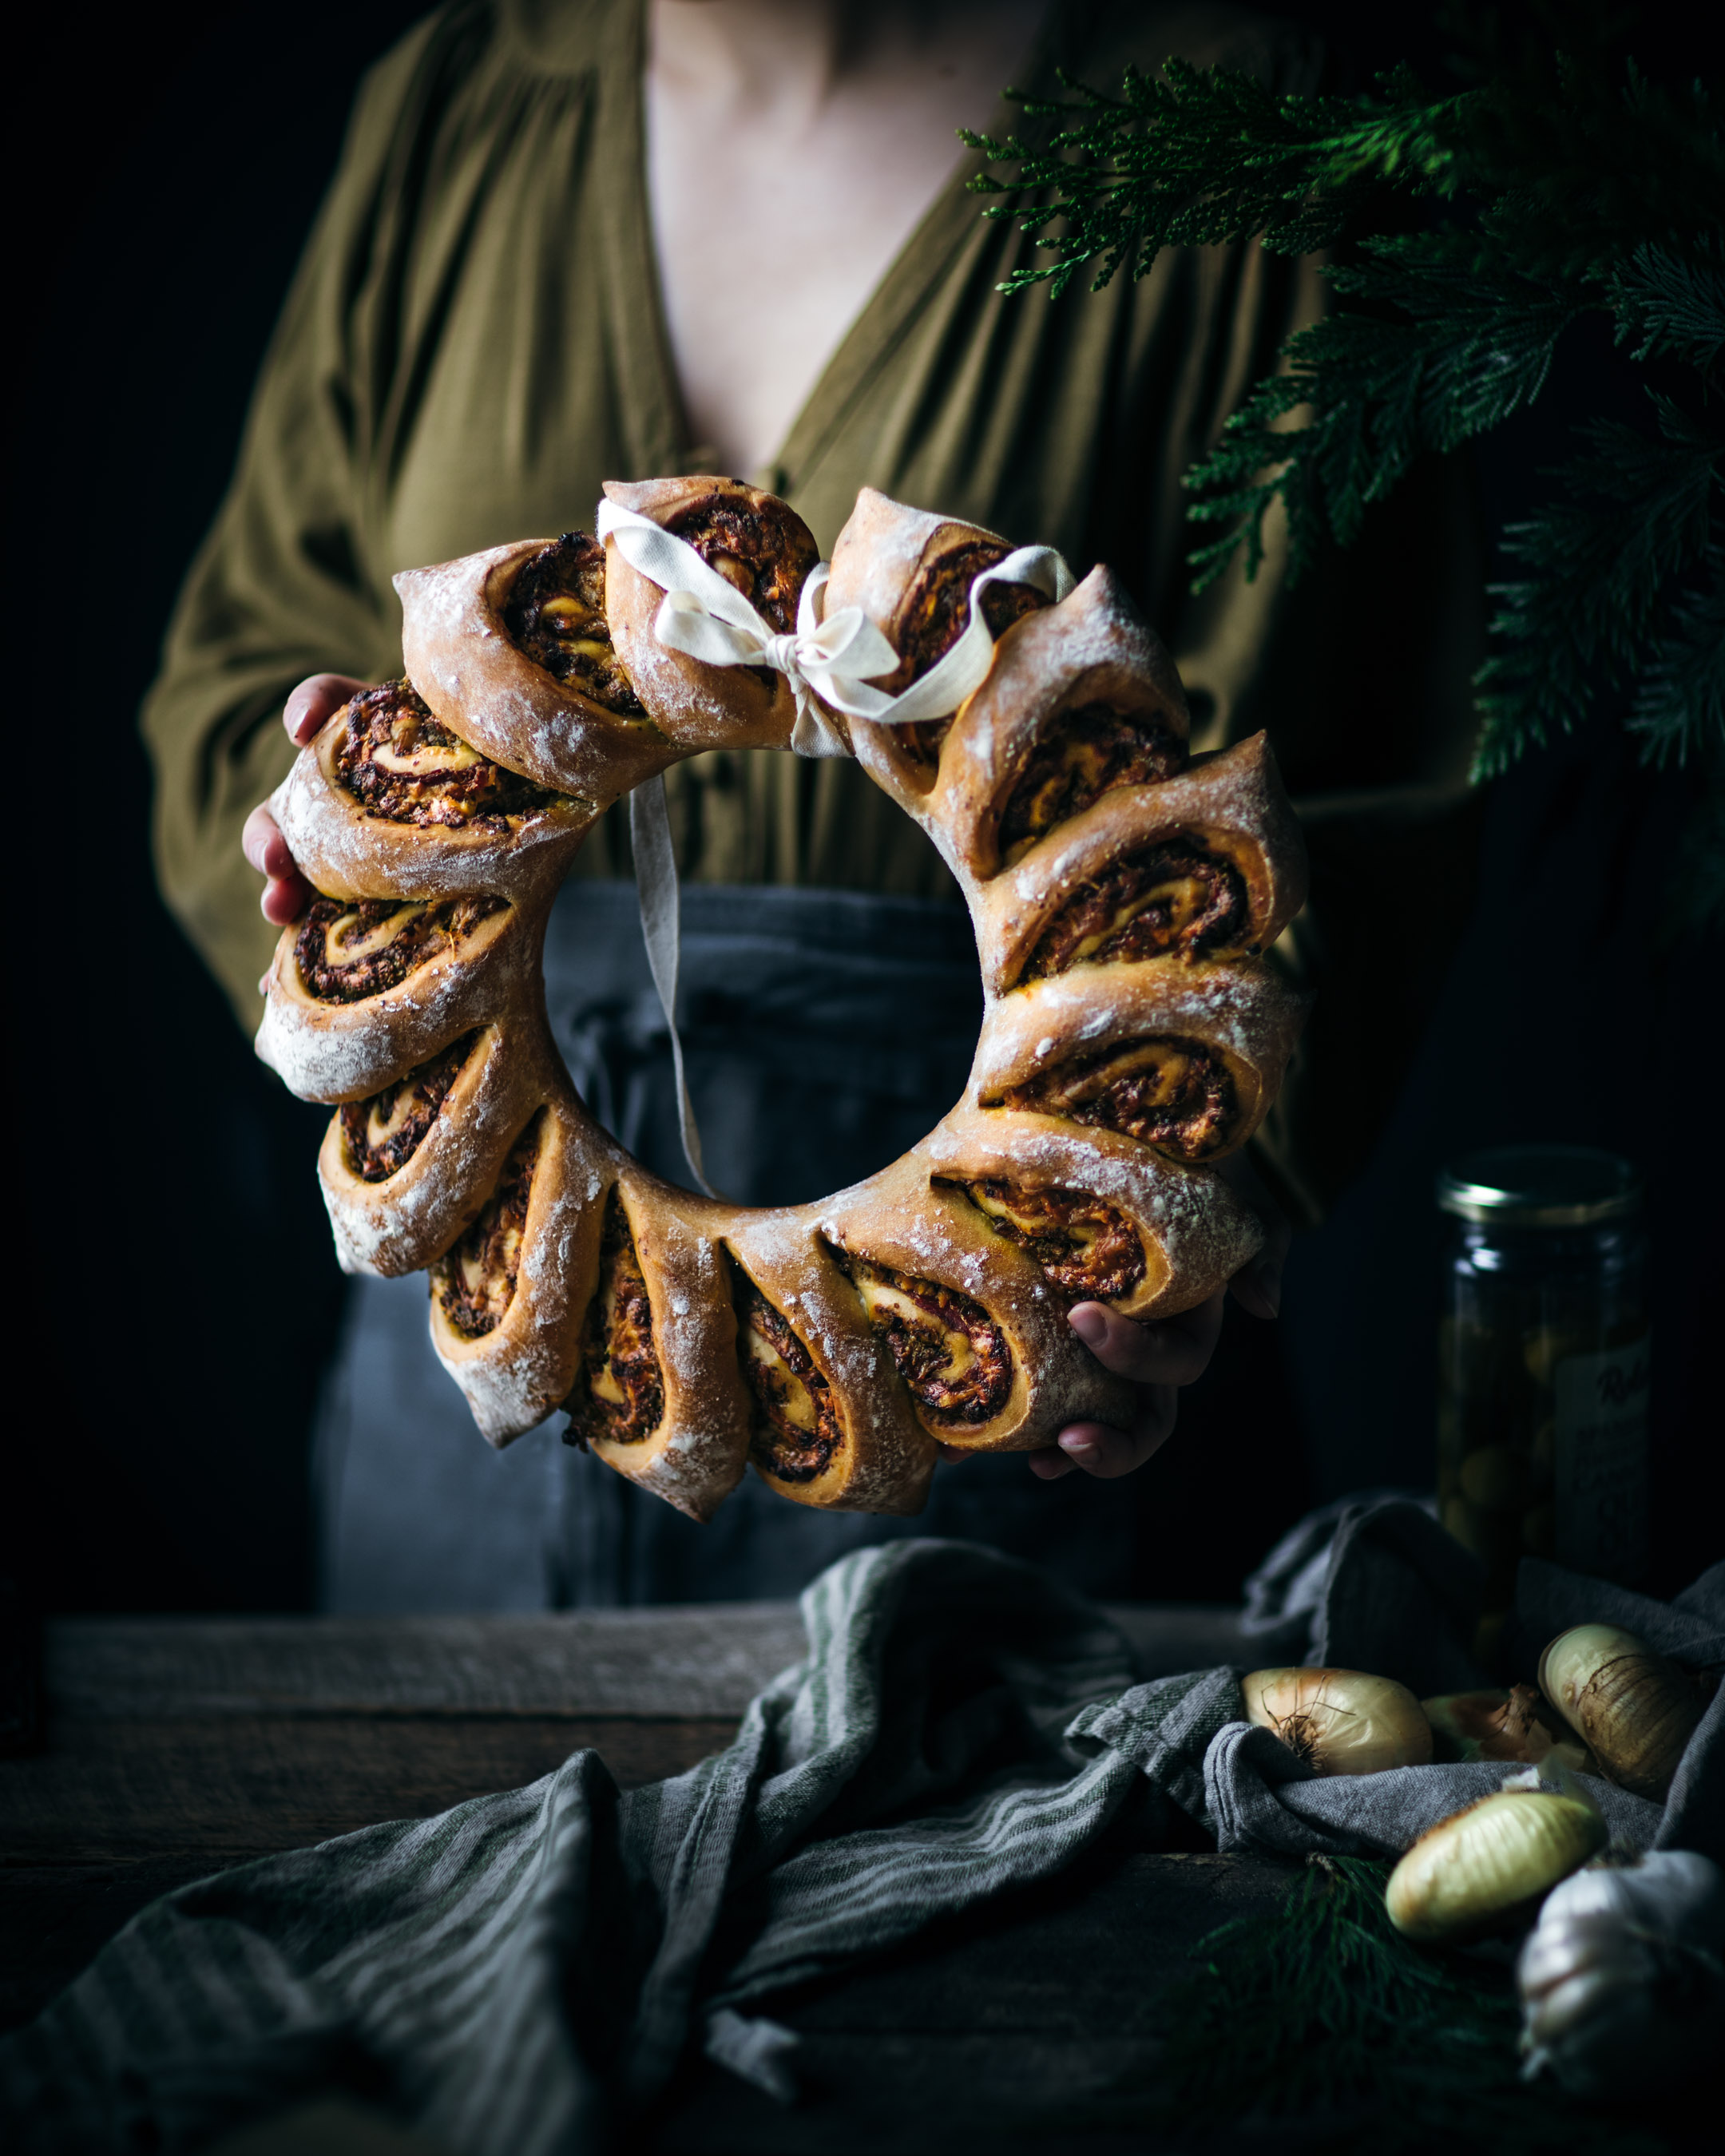 Wreath Bread with Caramelized Onions and Prosciutto